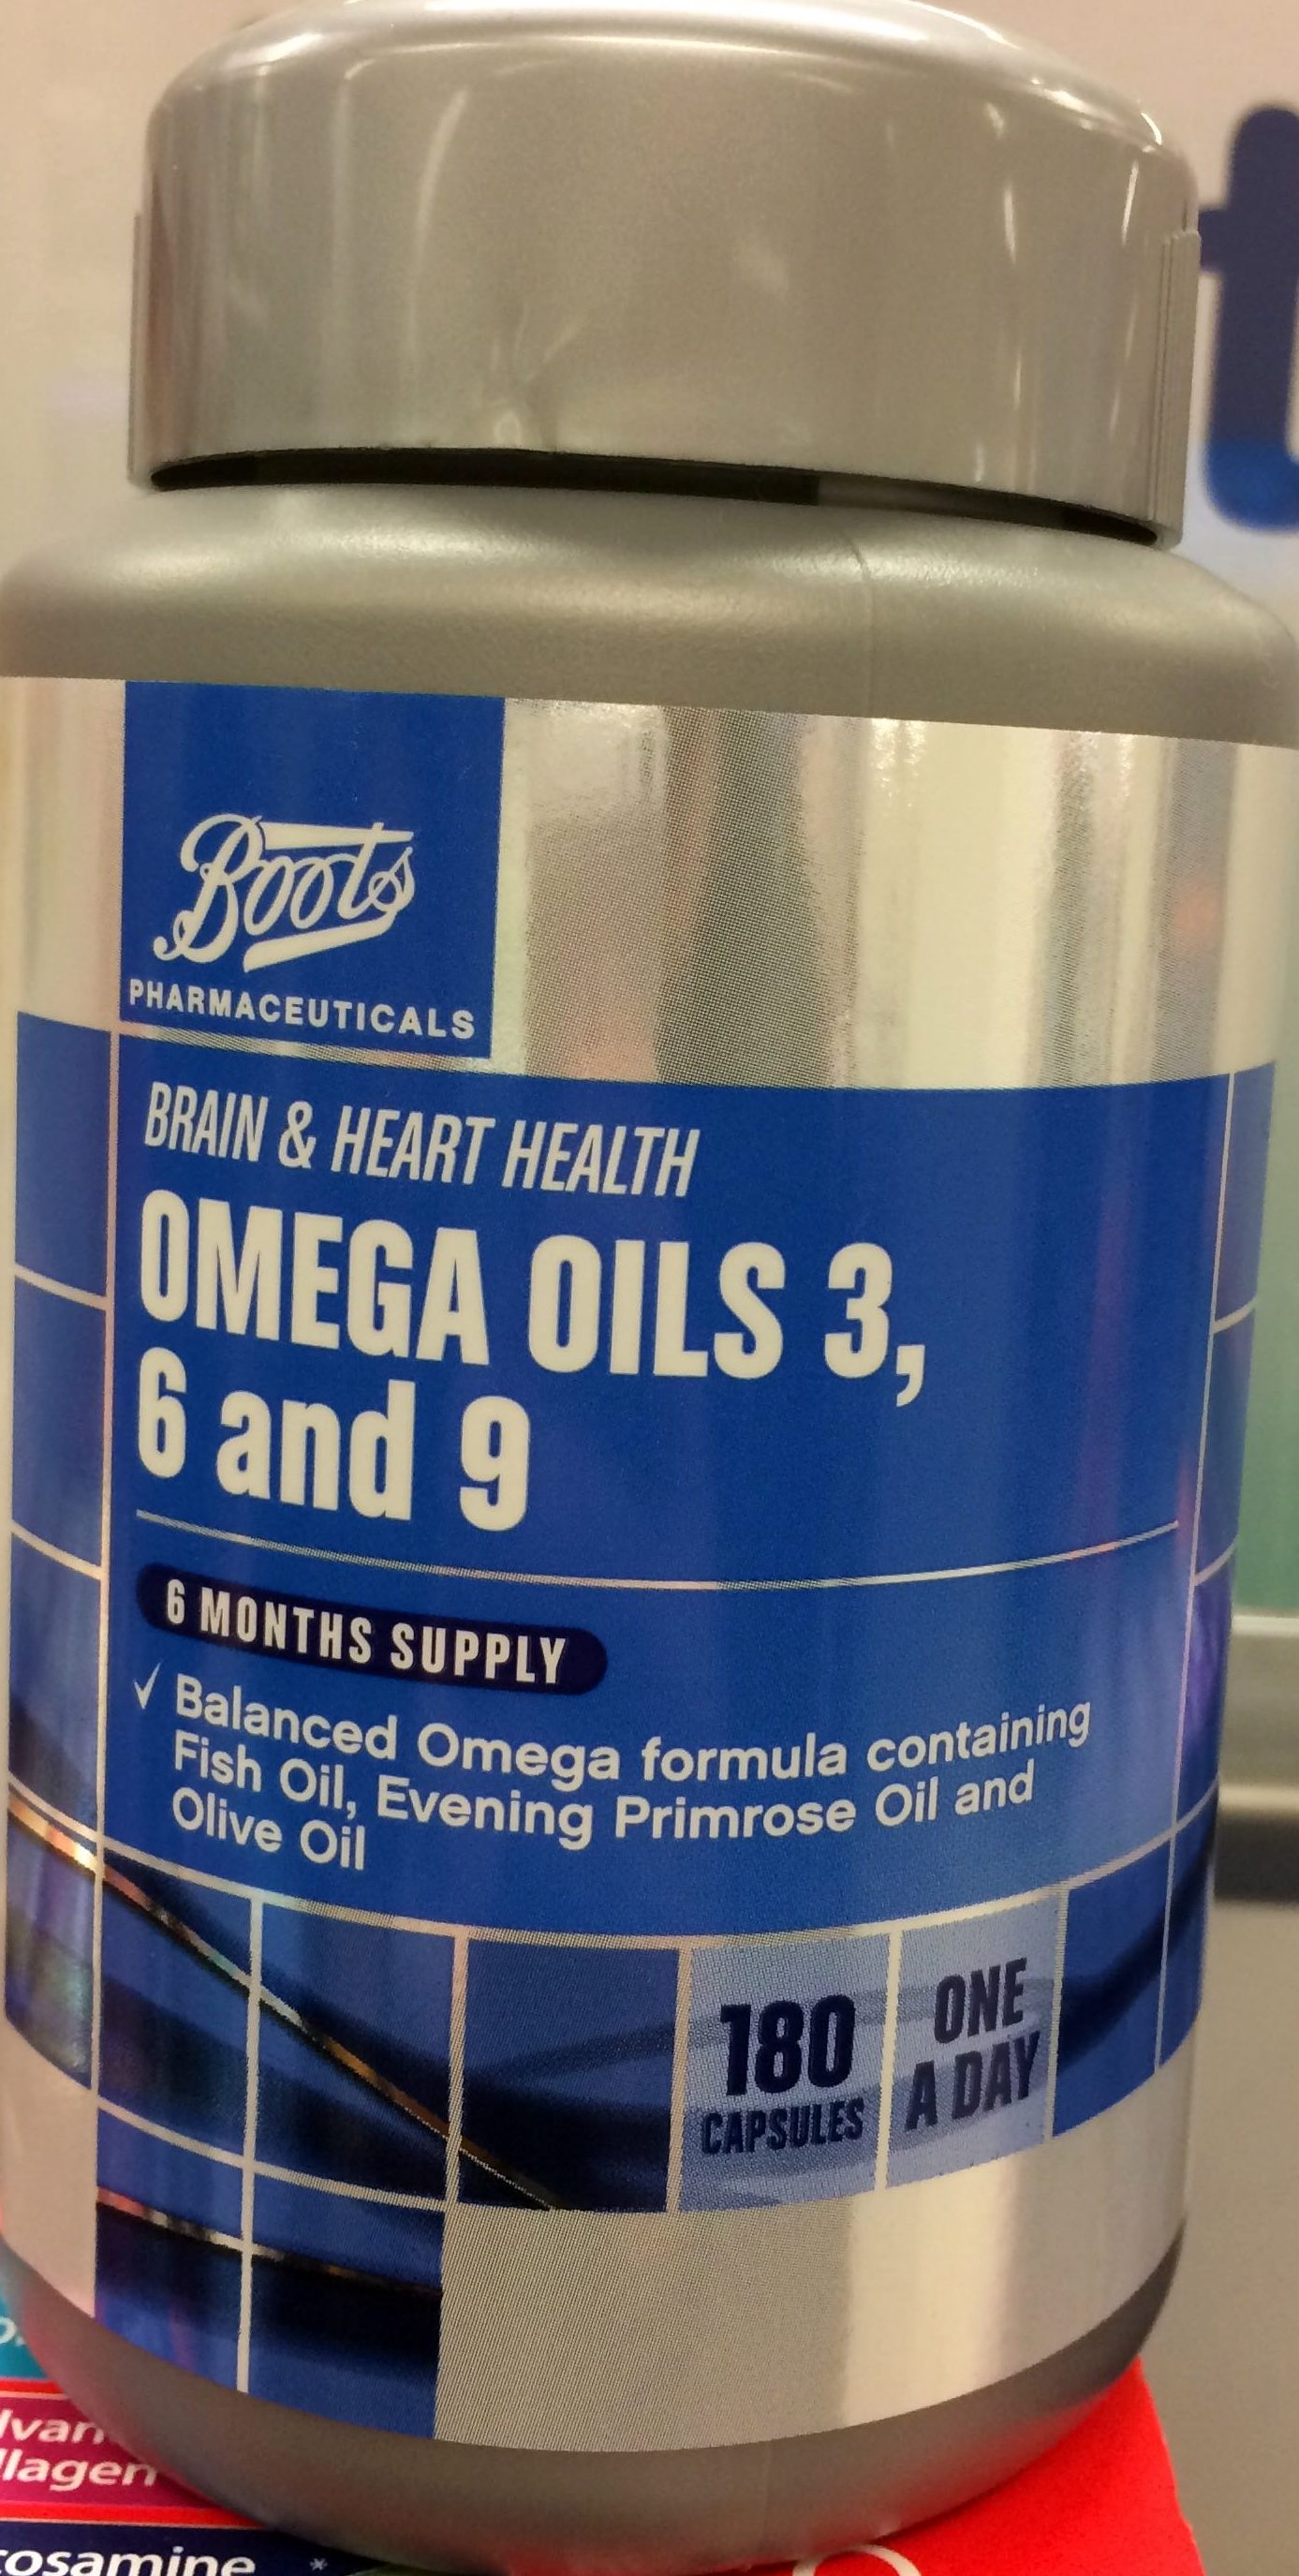 Omega Oils 3 6 And 9 Boots 180 Capsules